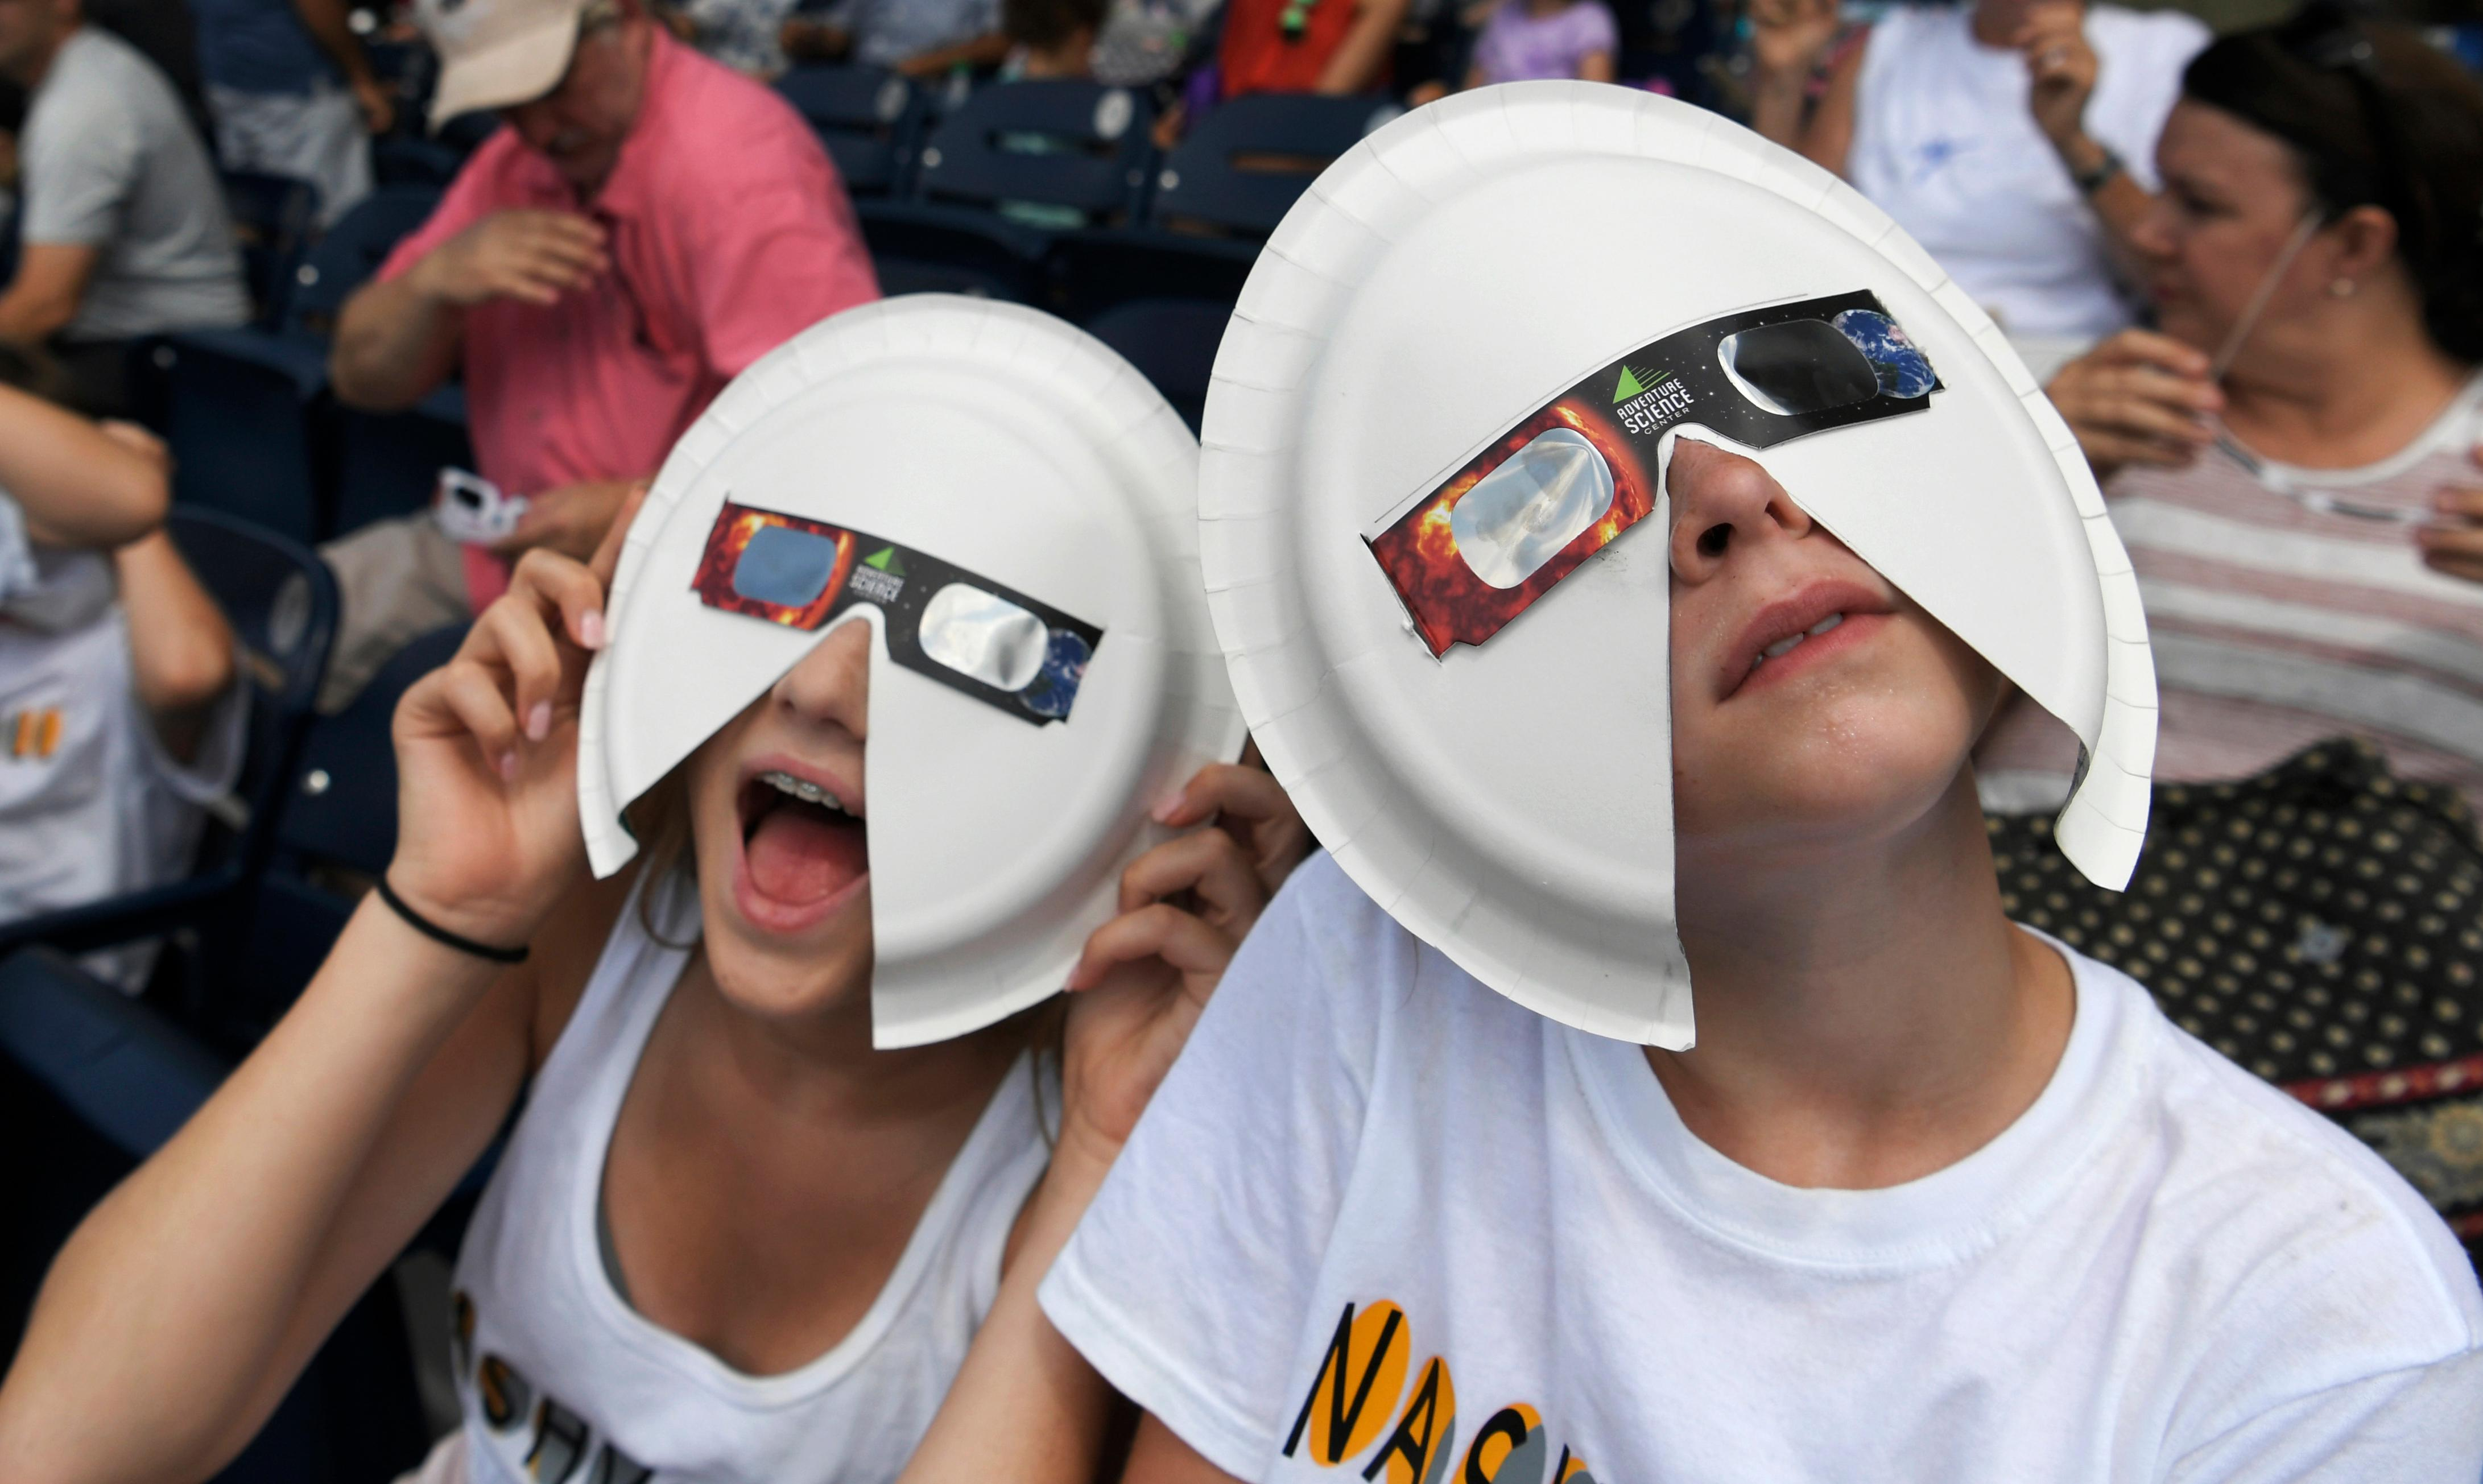 Annie Gray Penuel and Lauren Peck, both of Dallas, wear their makeshift eclipse glasses at Nashville's eclipse viewing party ahead of the solar eclipse at First Tennessee Park on Monday, Aug. 21, 2017, in Nashville, Tenn. (Shelley Mays/The Tennessean via AP)